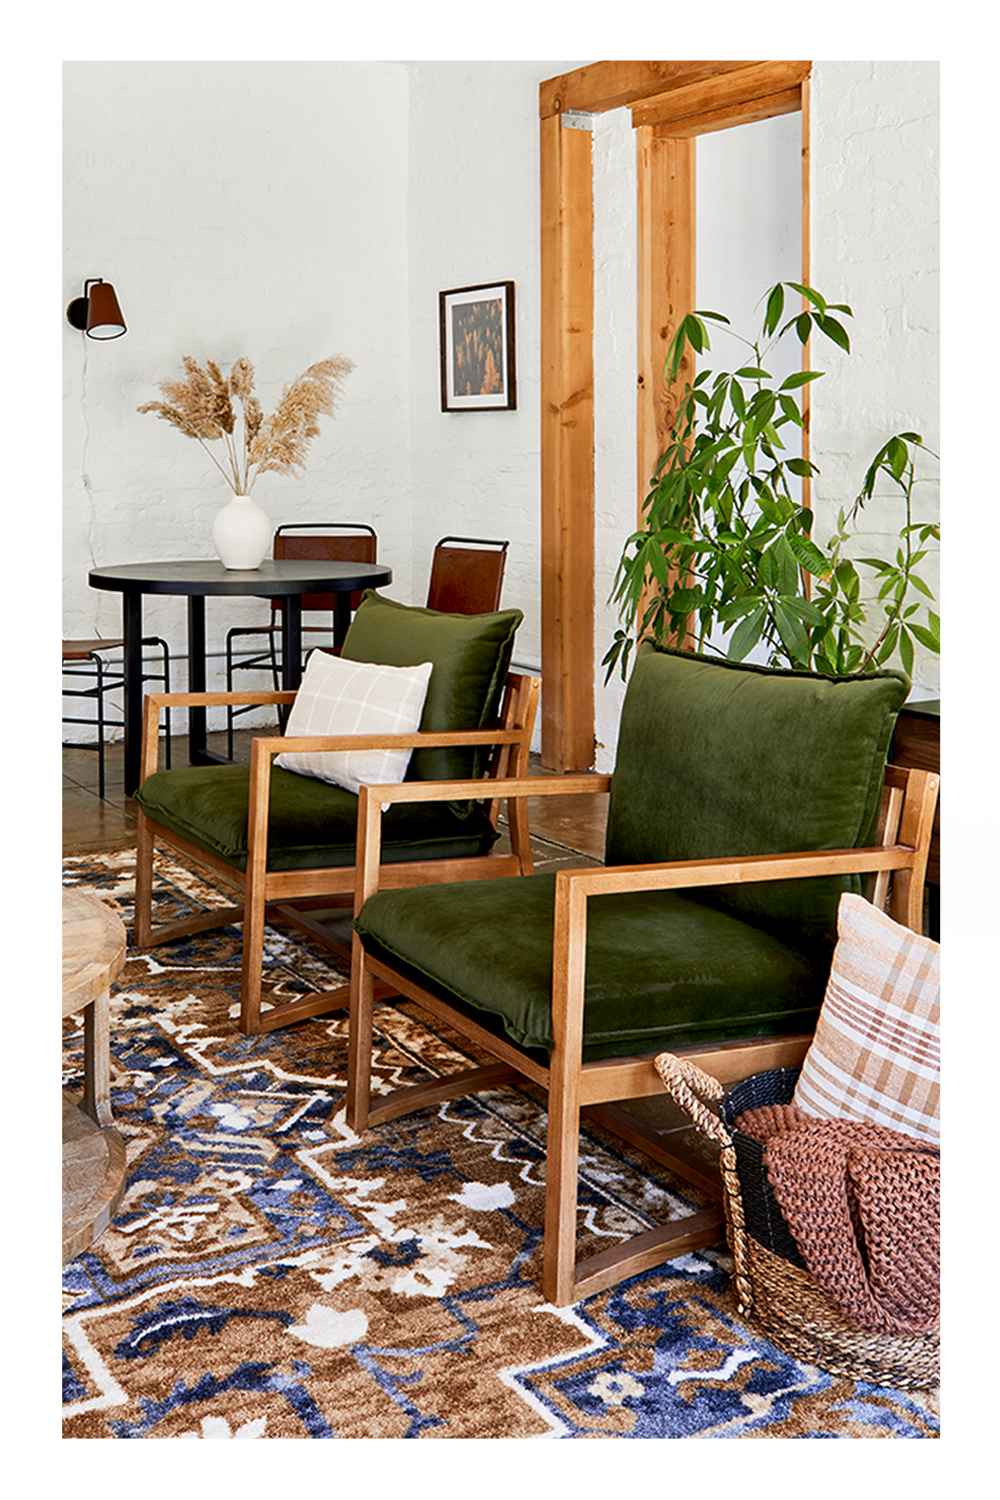 """5'x7' Printed Persian Geometric Design Tufted Area Rugs Gold - Threshold™, Castalia Round Natural Wood Coffee Table - Threshold™, 14oz Lidded Amber Glass Jar Crackling Wooden 3-Wick Applewood and Amber Candle - Threshold™, 7"""" x 7"""" Earthenware Fall Edit Texture Vase White - Threshold™, 28"""" Artificial Hops Stem - Threshold™, Metal 2-in-1 Wire Basket with Wood Handle Black - Project 62™, Higgins Sling Arm Chair Olive Velvet - Threshold™, Oblong Woven Yarn Dye Plaid Decorative Throw Pillow Cream/Caramel - Threshold™, Nep Yarn Knit Throw Blanket Brown - Threshold™, Block Basket Black - Threshold™, Ward Faux Leather Sling Metal Dining Chair Caramel - Threshold™, 10"""" x 8.5"""" Earthenware Fall Texture Vase White - Threshold™, 30"""" x 2"""" Artificial Giant Reed Arrangement Stem - Threshold™, 20"""" x 20"""" Fall Trees Framed Wall Art - Threshold™, Covington Faux Leather Sconce Brown (Includes LED Light Bulb) - Threshold™, 68"""" Wide Wood 5 Shelf Bookcase Natural - Threshold™, 11""""x4"""" Set of 3 Tapers Metal Candle Holder Black - Threshold™, 20"""" x 16"""" Mountains Framed Wall Canvas - Threshold™, 11"""" Medium Coiled Rope Basket Gray Charcoal - Threshold™, 6.6"""" x 5.5"""" Rolling Harvest Squirrel Figurine Gold - Threshold™, 10"""" x 10"""" Goldenrod Artificial Plant Arrangement Yellow - Threshold™, 13"""" Medium Coiled Rope Basket Gray Charcoal - Threshold™, 36"""" x 18"""" Artificial Monstera Plant in Ceramic Planter White - LCG Florals"""